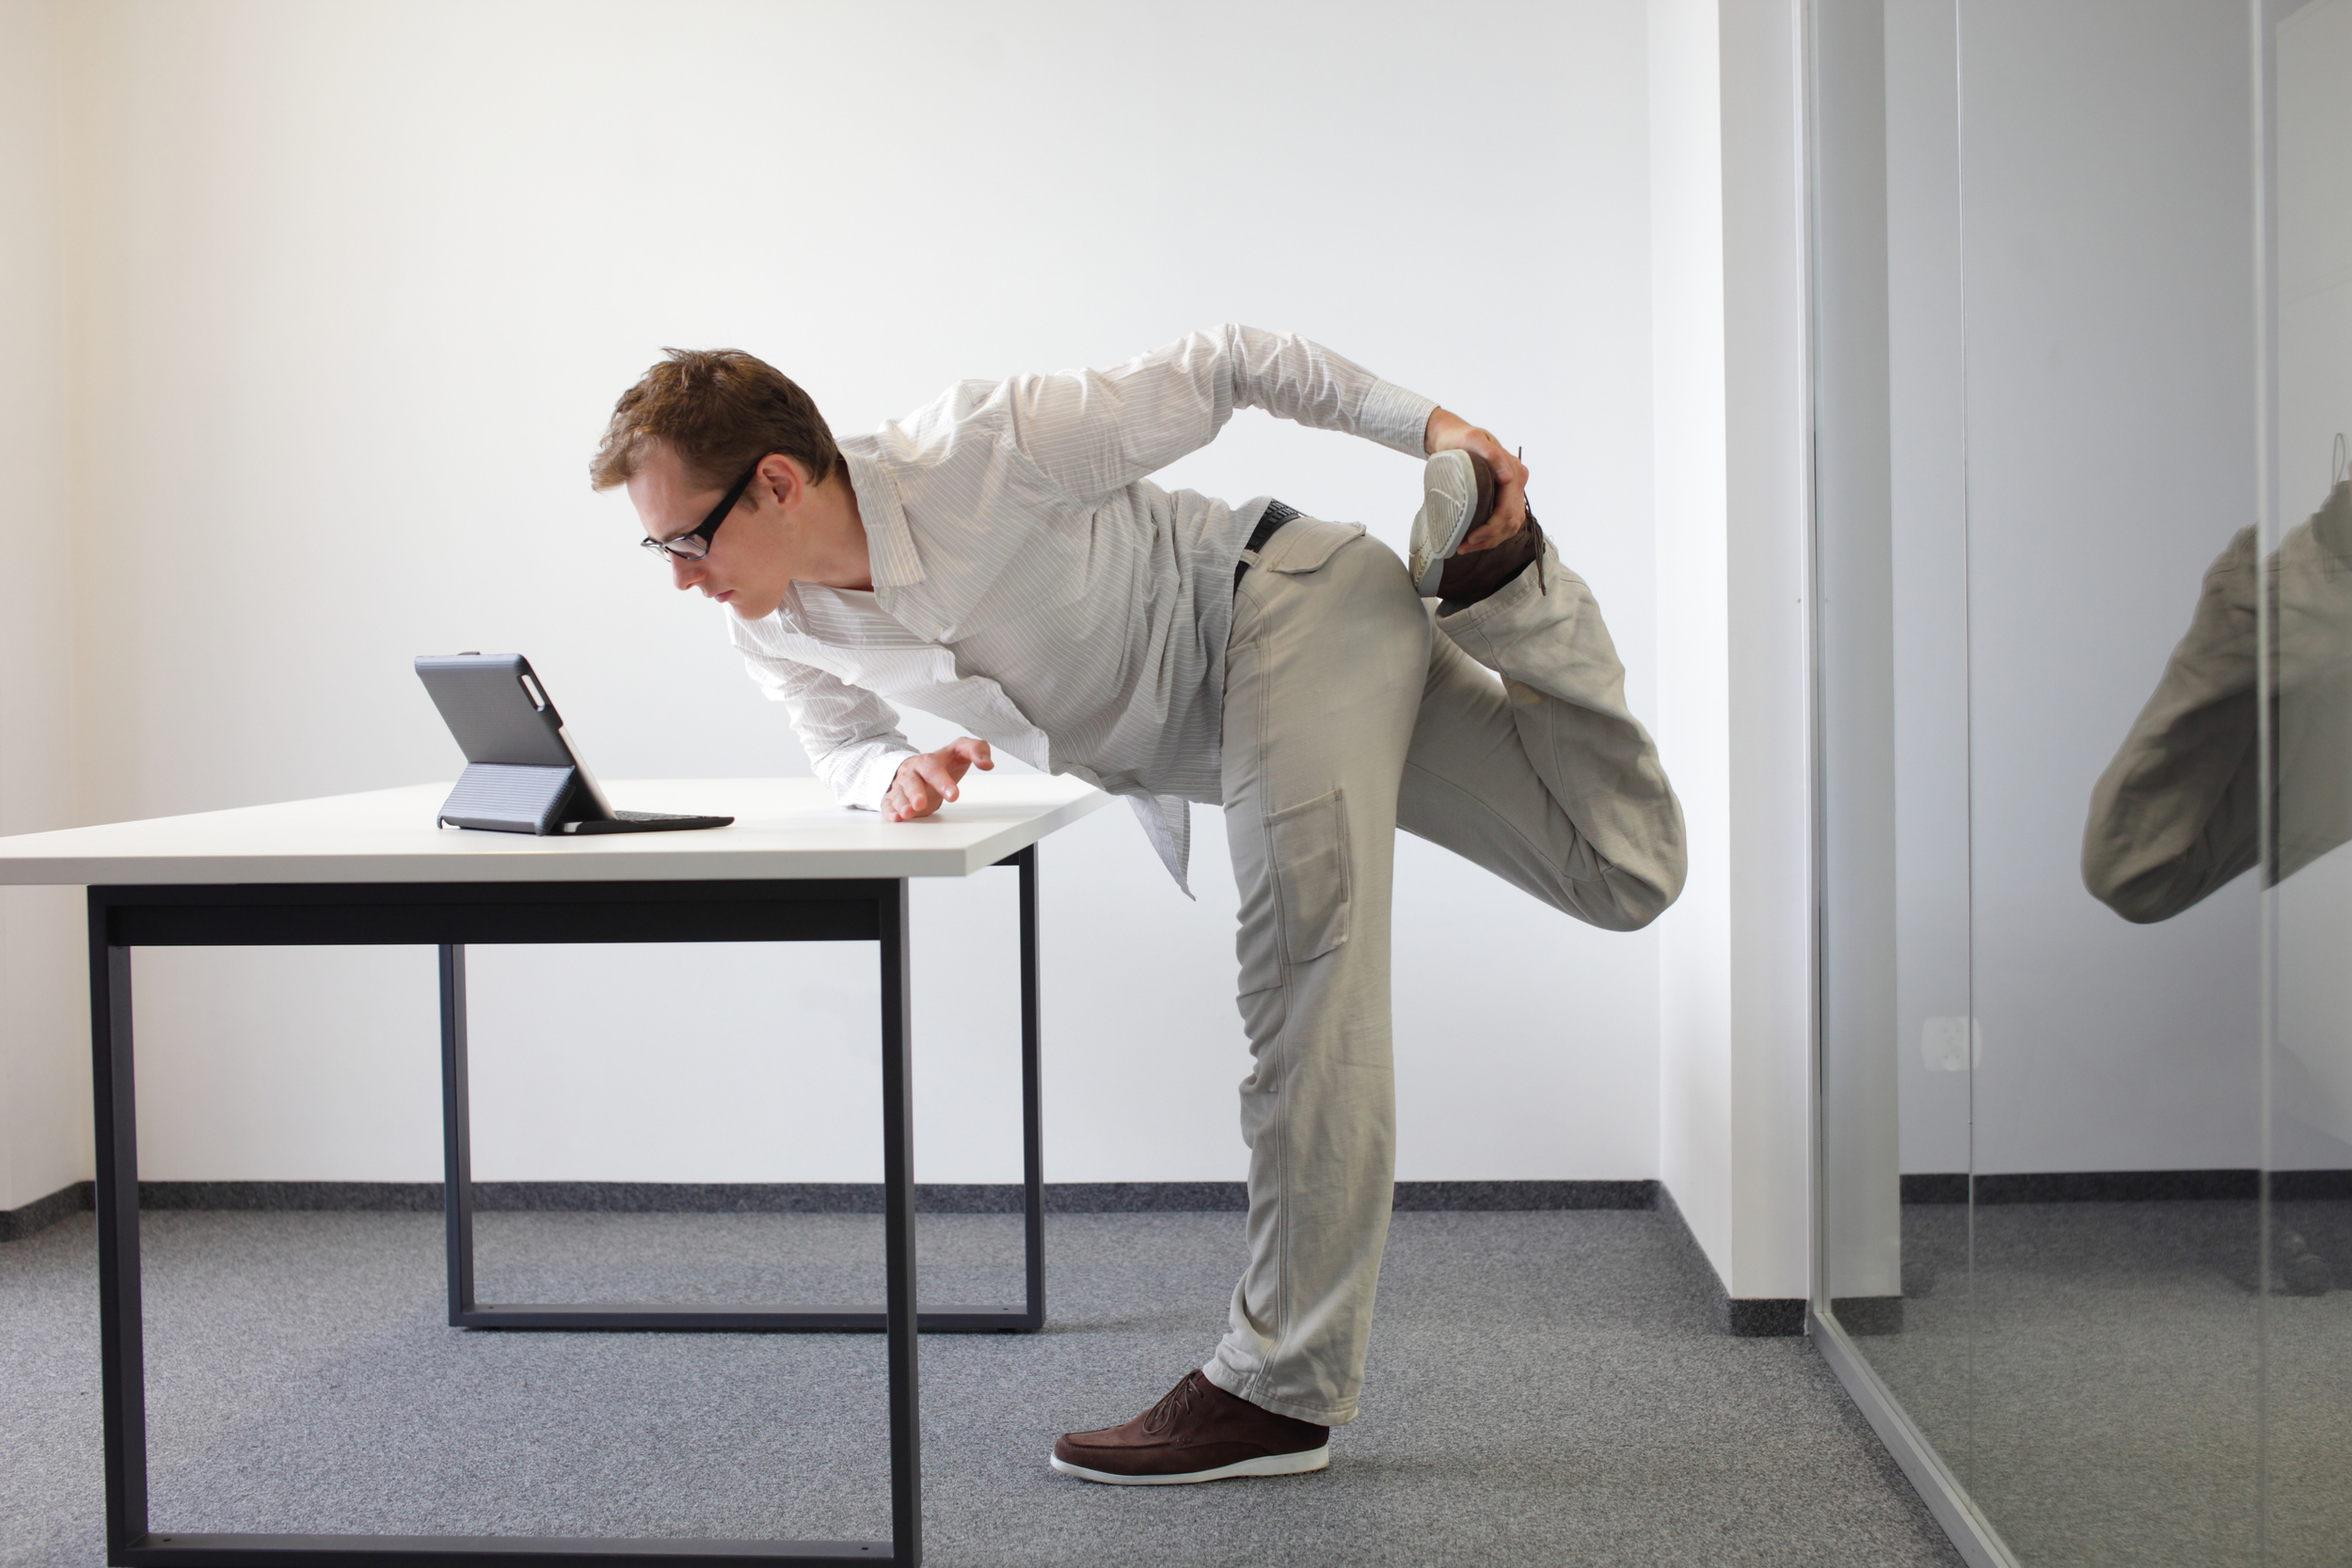 Can we really undo the harm that sitting for long hours can do, simply by exercise and healthy eating?